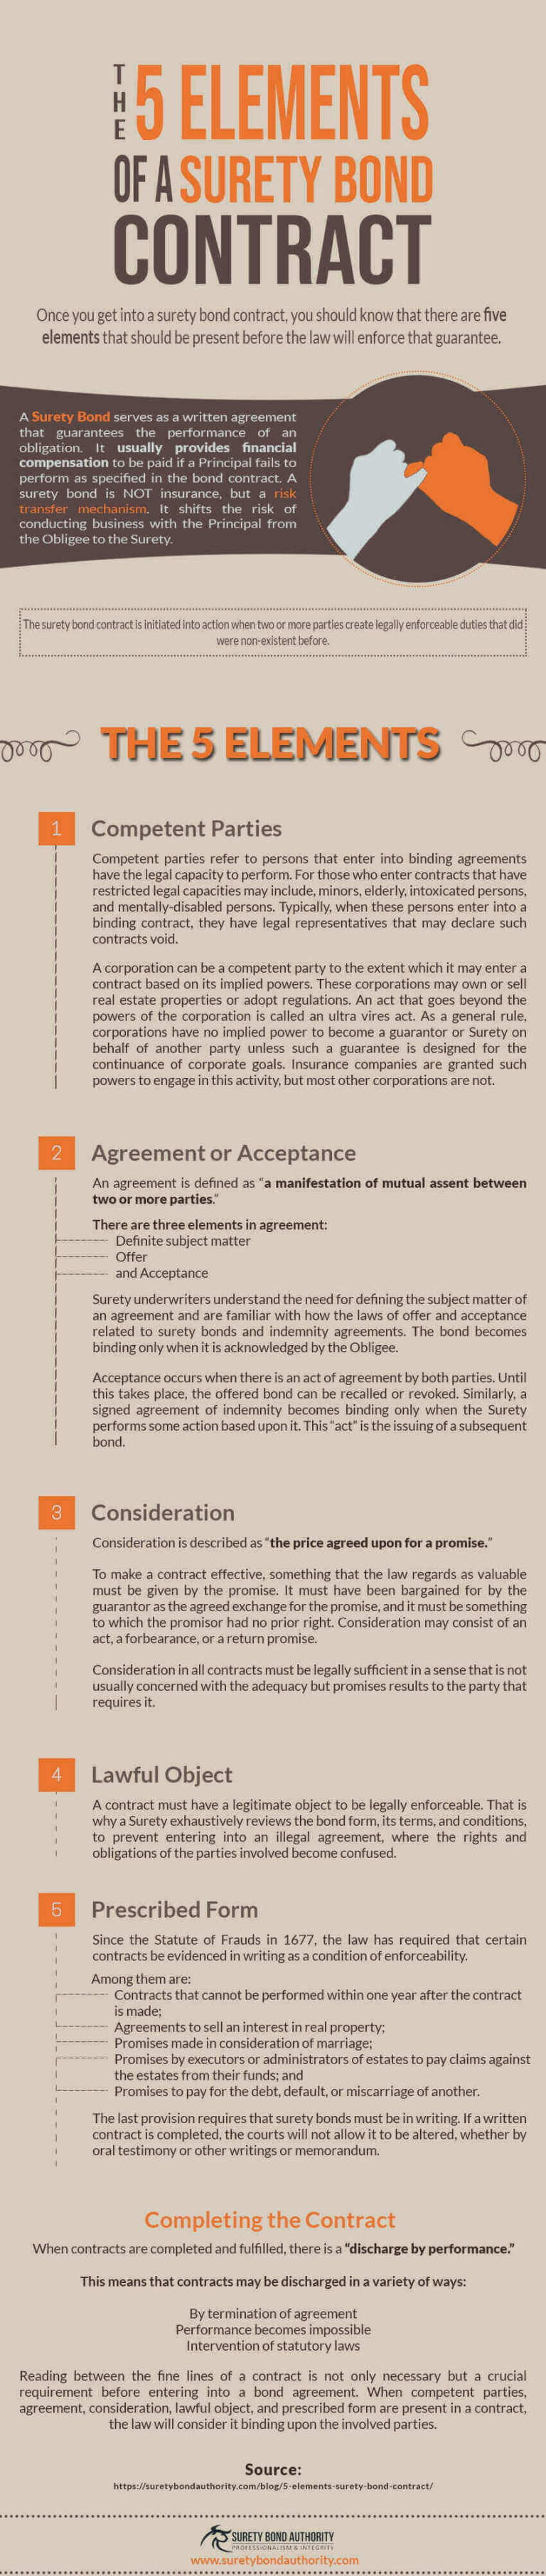 Elements of Surety Bond Contract Infographic